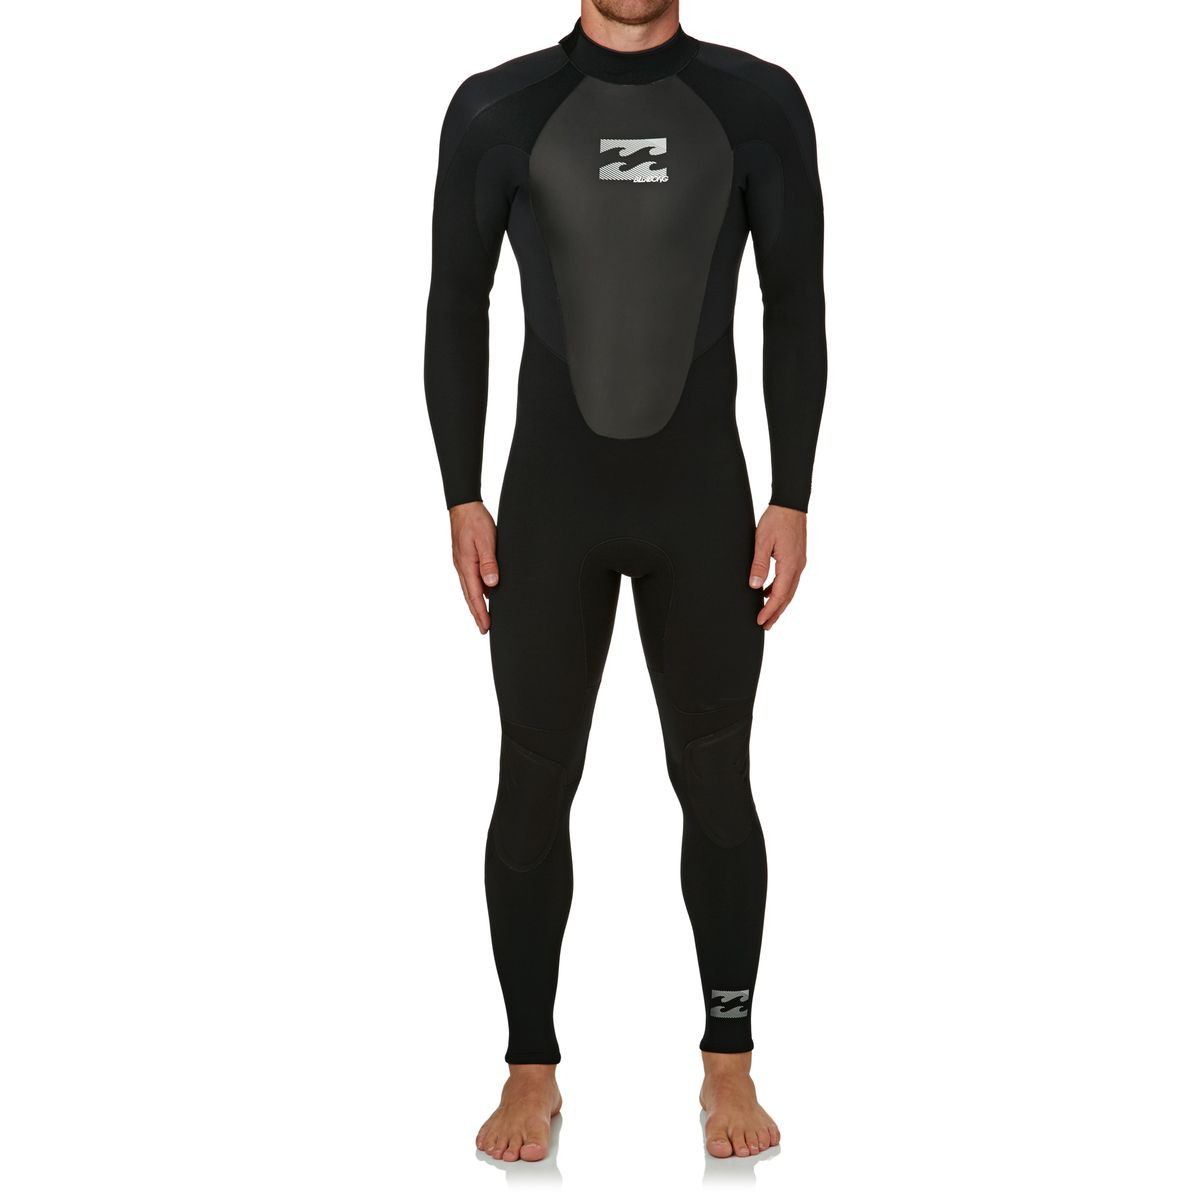 Billabong Intruder GBS 5/4mm 2018 Back Zip Wetsuit - Black